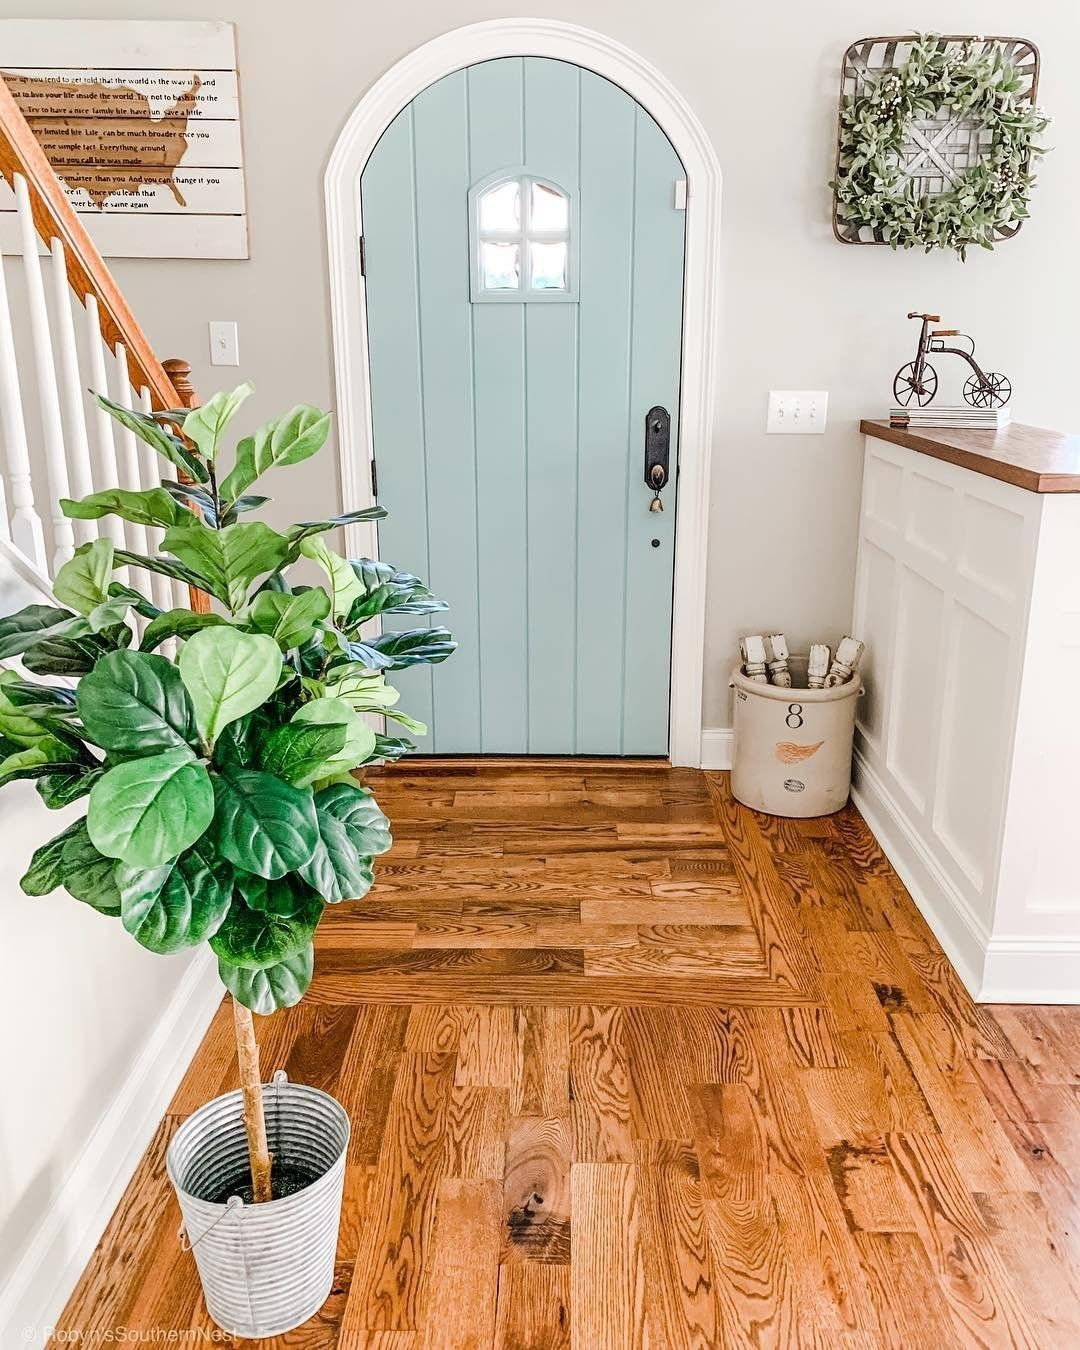 Better Homes Gardens On Instagram I Took A Risk By Painting Our Interior Door A Few Years Ago But I M So Glad I Did Wr Home Dream House Farmhouse Doors